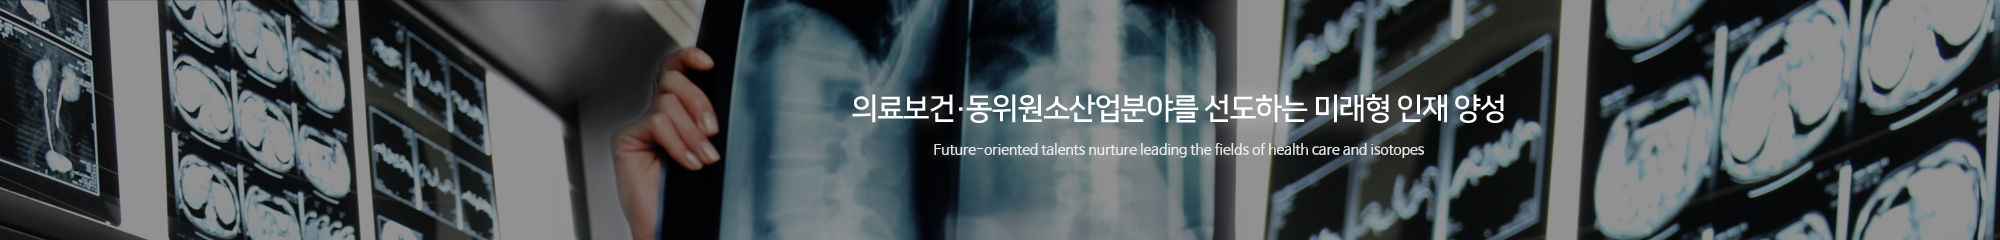 의료보건·동위원소산업분야를 선도하는 미래형 인재 양성 Future-oriented talents nurture leading the fields of health care and isotopes